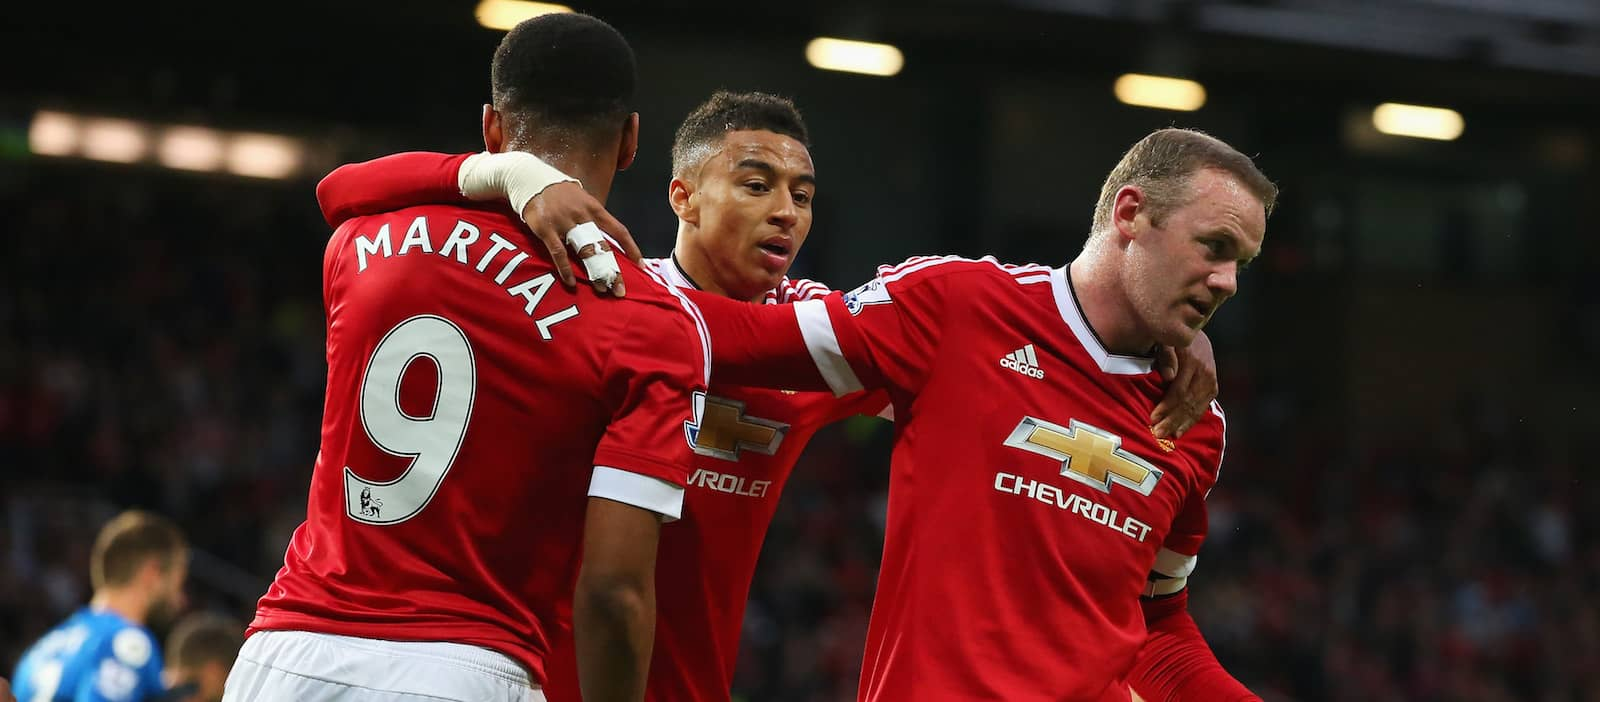 Manchester United 3-1 Bournemouth: Wayne Rooney orchestrates comfortable win